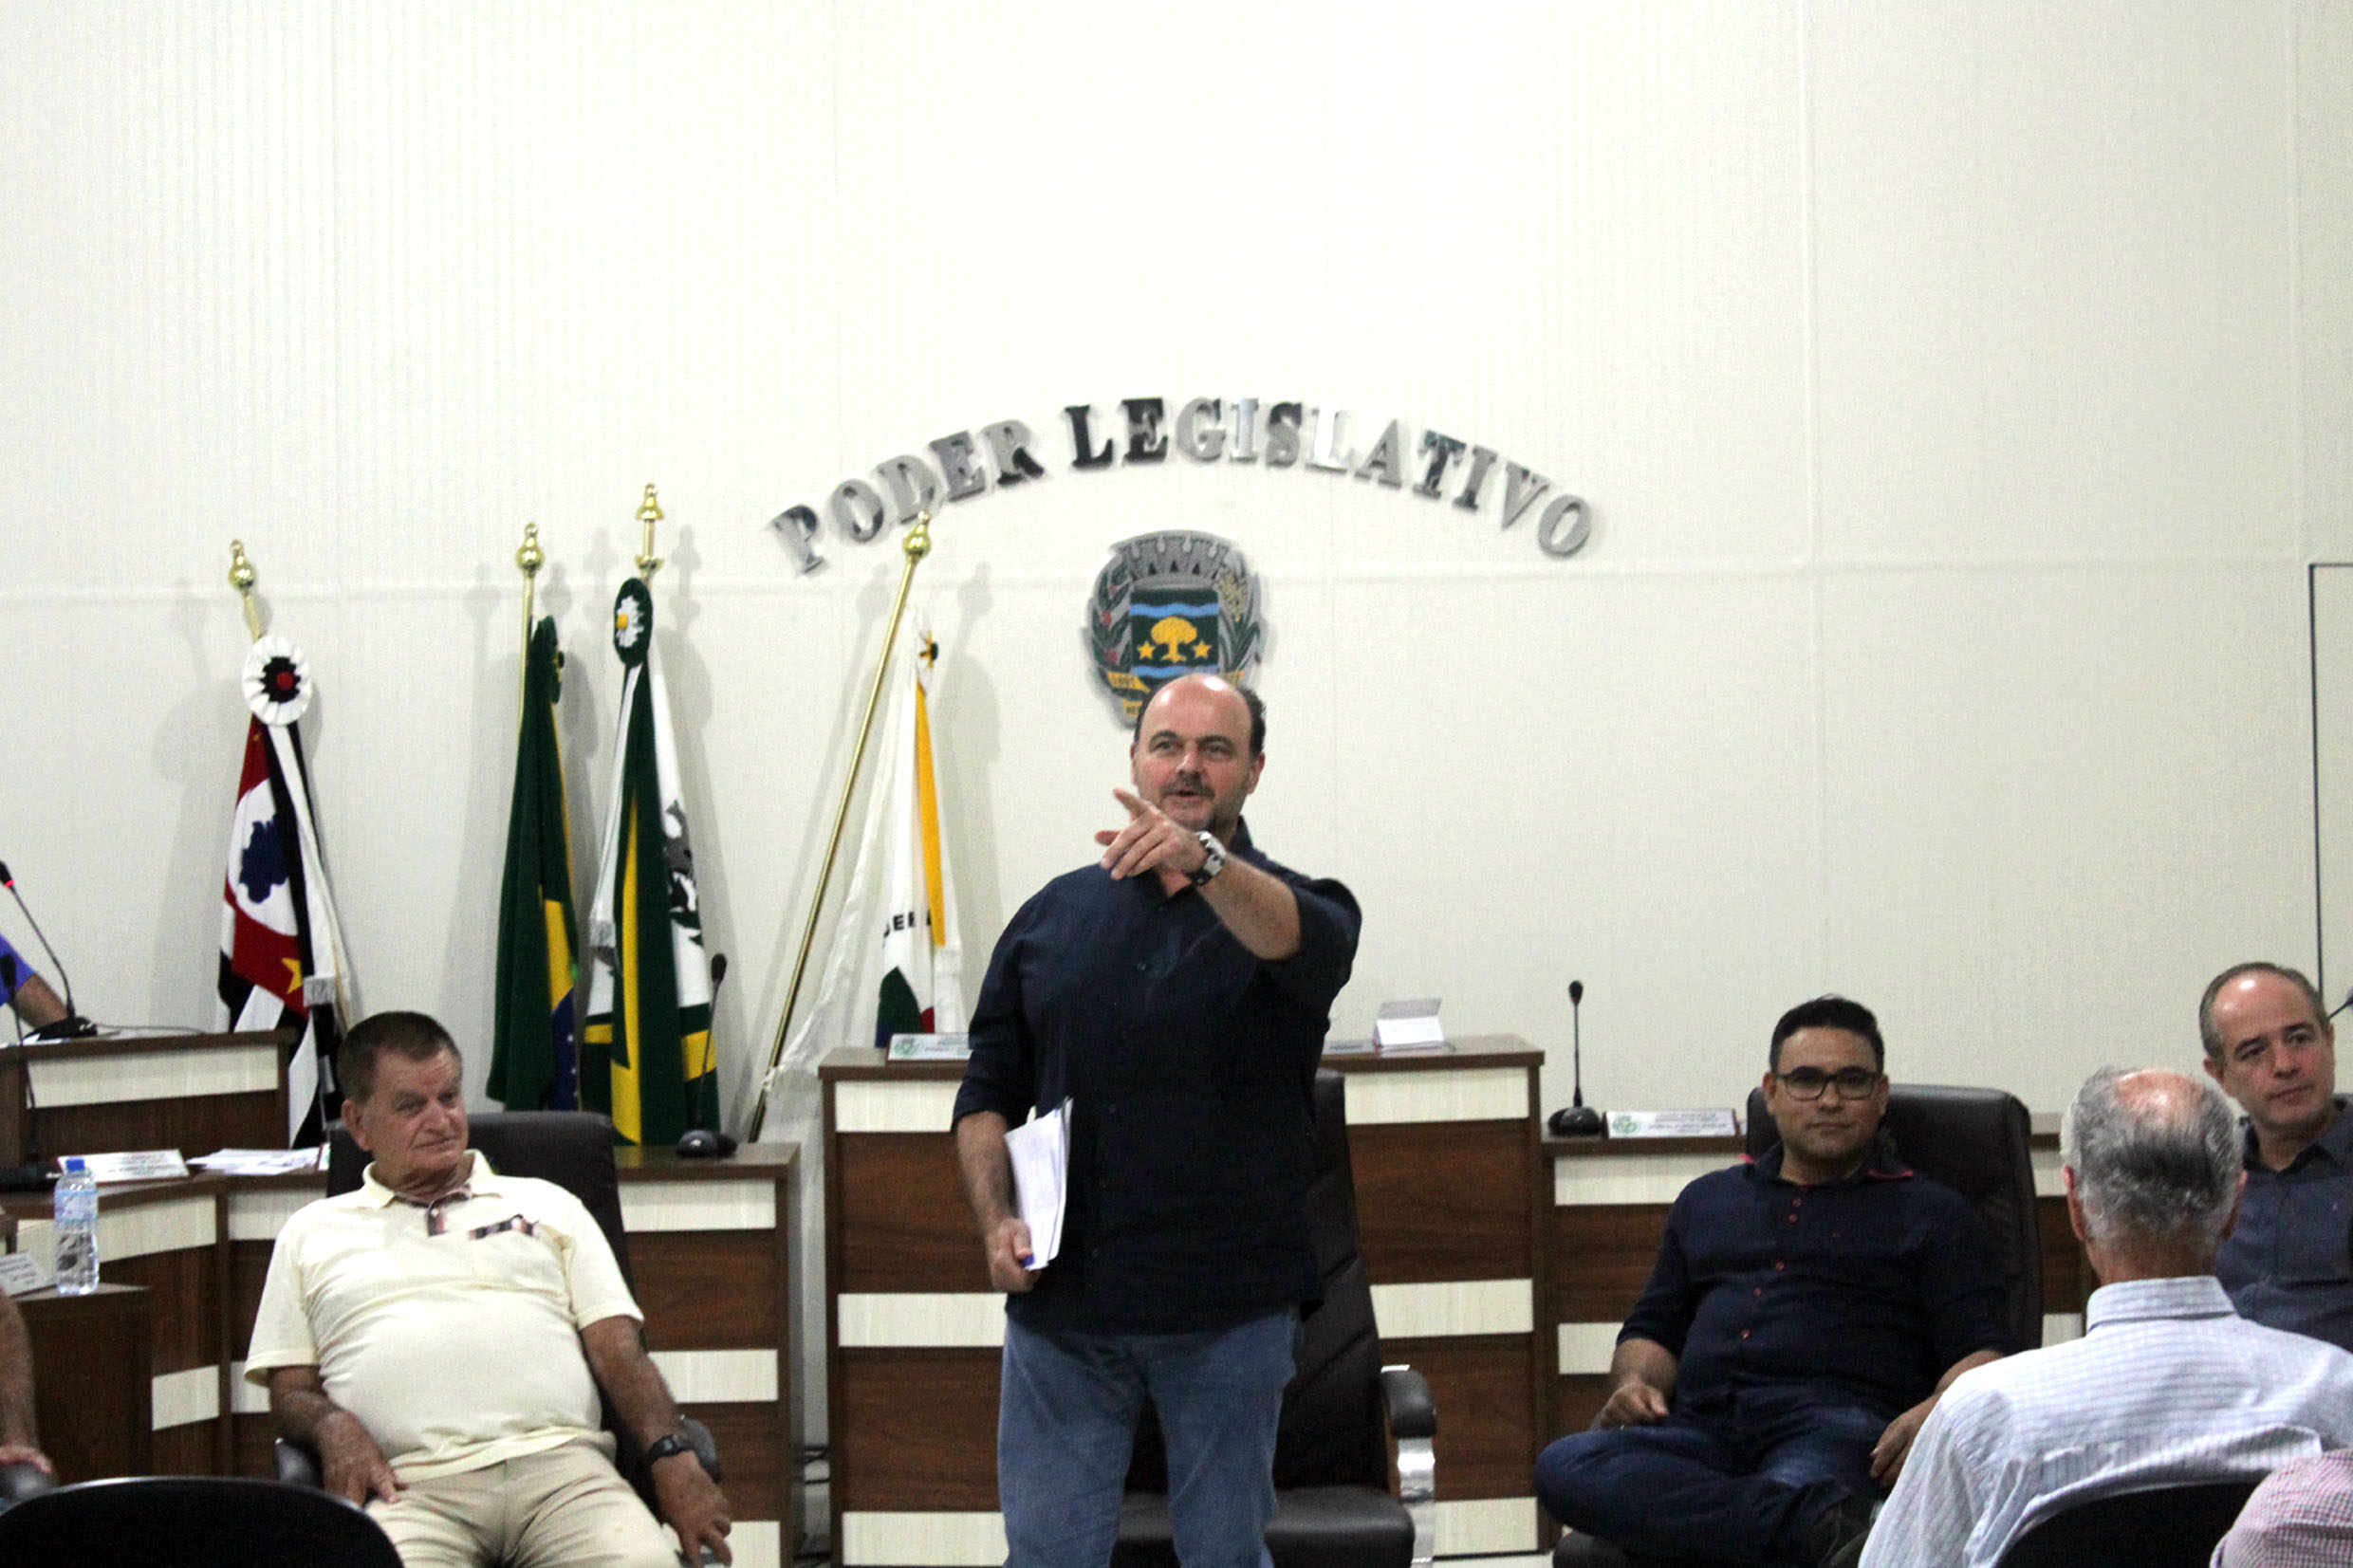 Ricardo Madalena (ao centro)<a style='float:right' href='https://www3.al.sp.gov.br/repositorio/noticia/N-10-2017/fg210441.jpg' target=_blank><img src='/_img/material-file-download-white.png' width='14px' alt='Clique para baixar a imagem'></a>